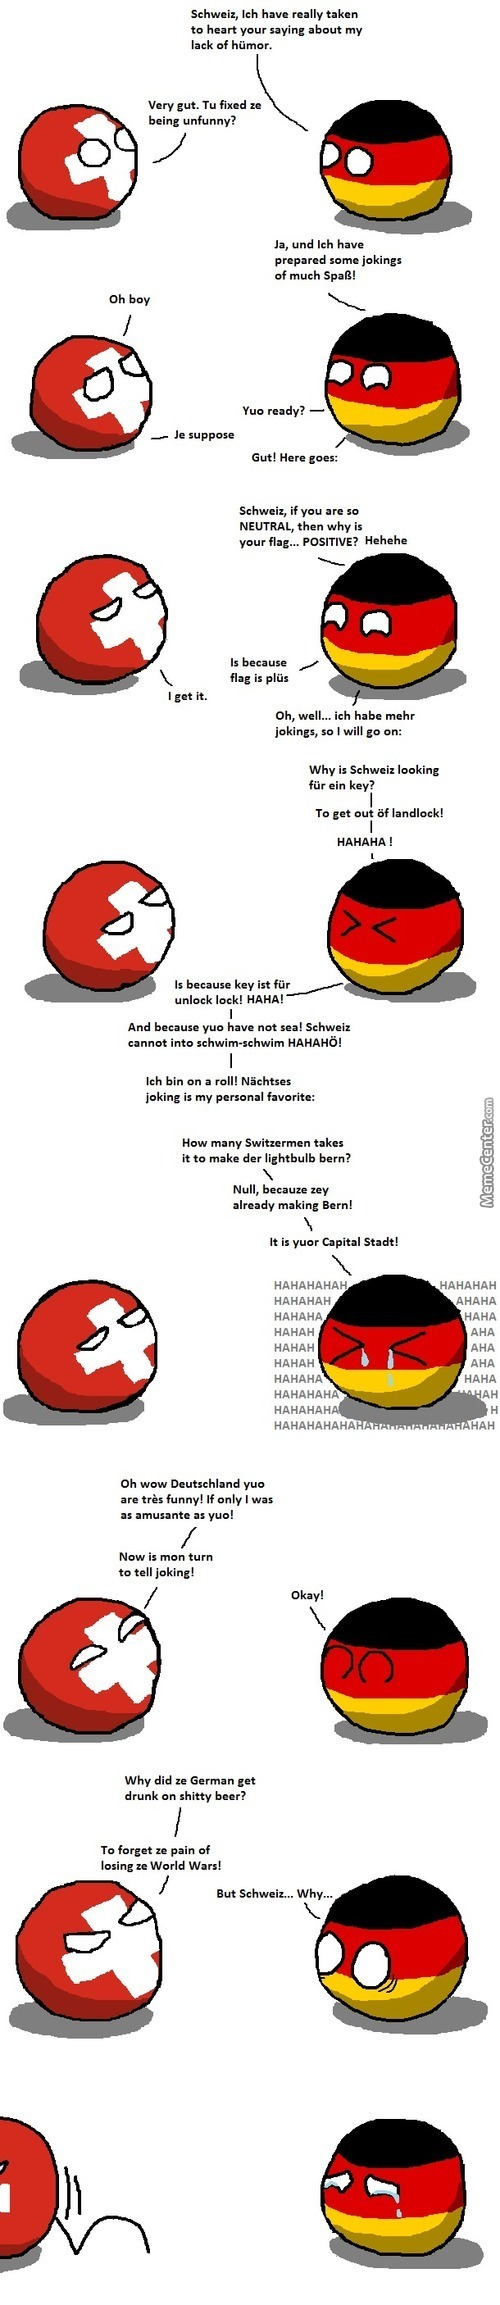 This Triggers The Germans